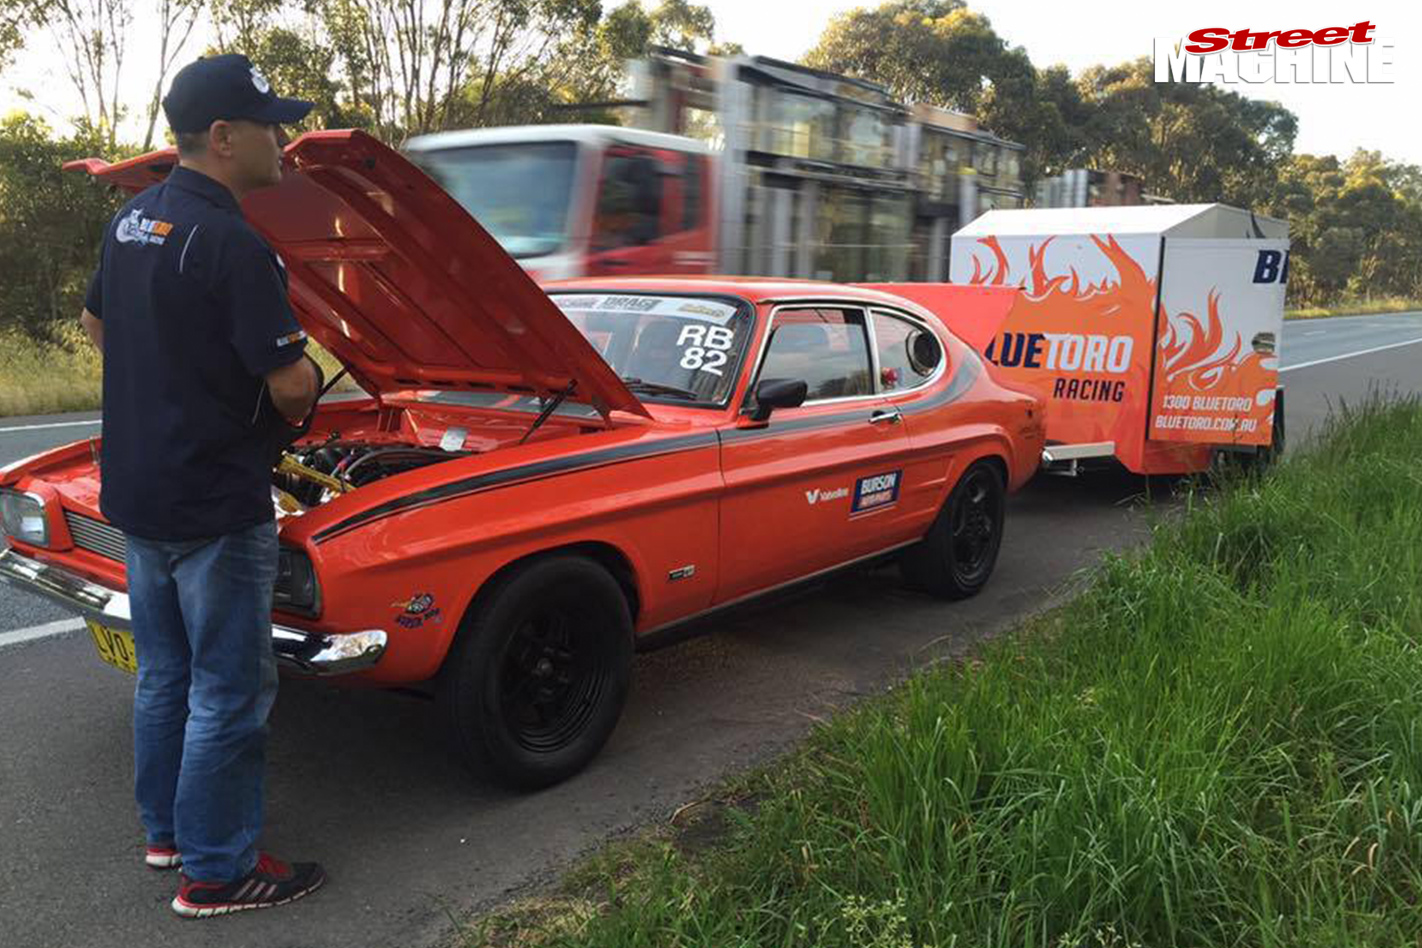 TURBO-LS-FORD-CAPRI-AND-TWIN-TURBO-LS-MITSUBISHI-EXPRESS-VAN-AT-DRAG-CHALLENGE-engine